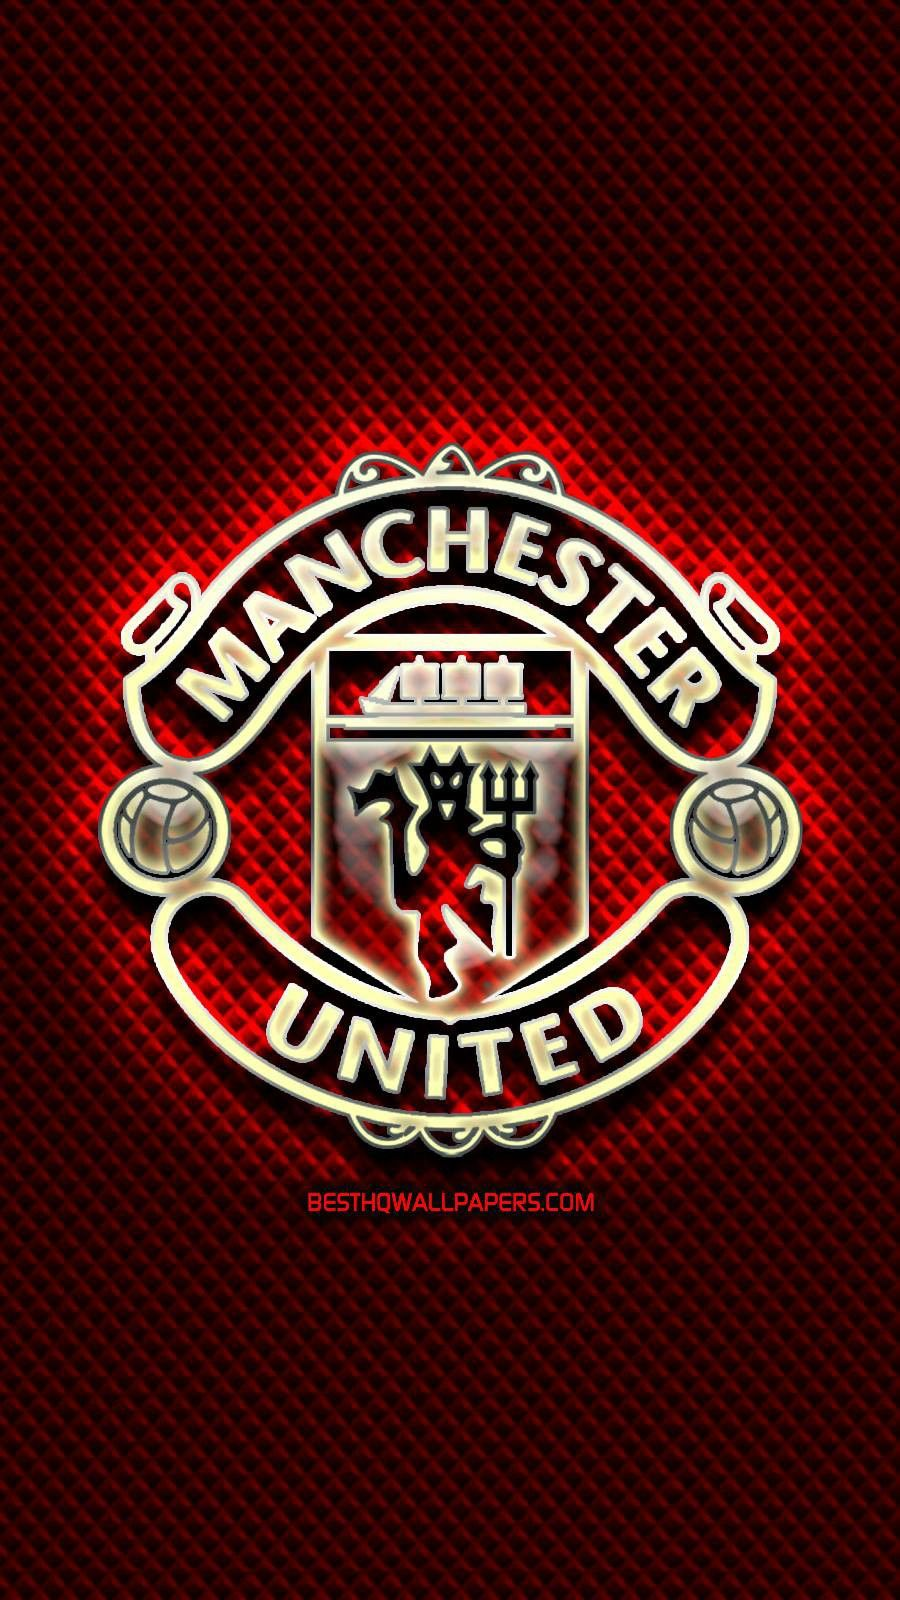 man utd phone wallpaper manchester united logo manchester logo manchester united wallpaper man utd phone wallpaper manchester